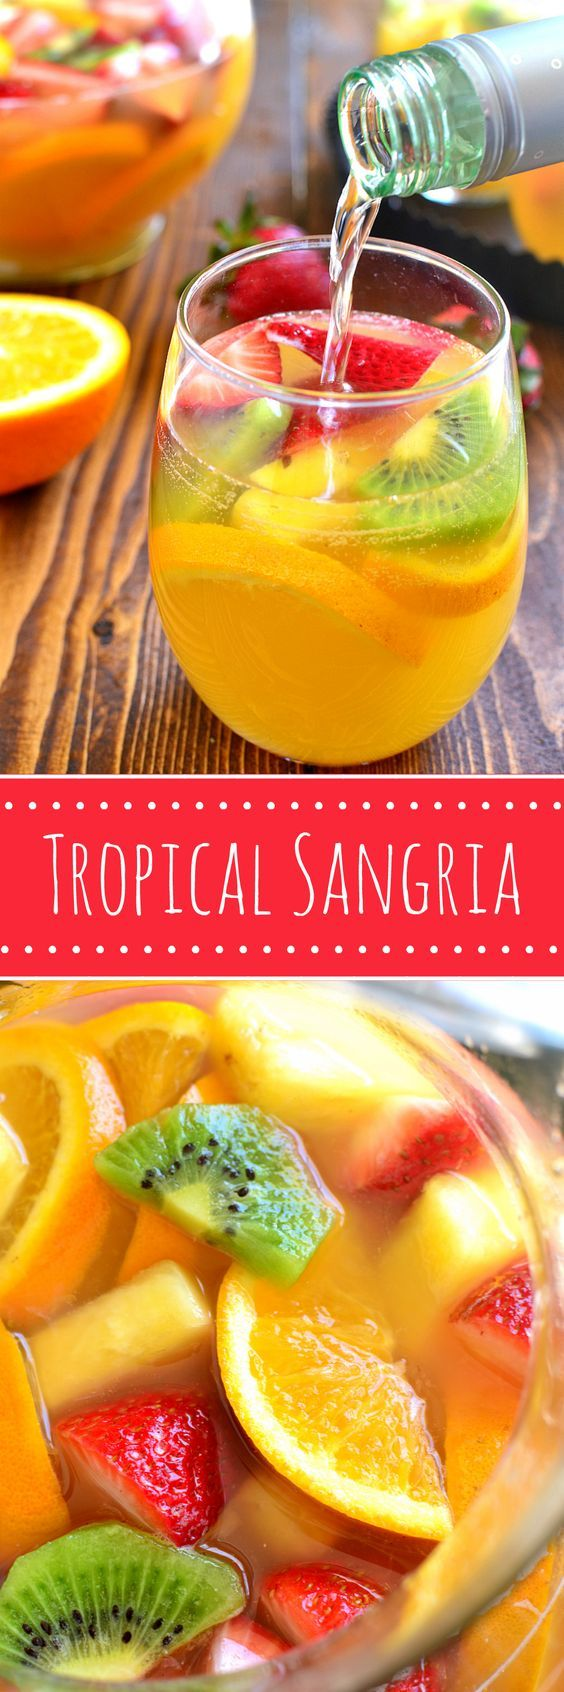 Tropical Sangria - 16 Summer Sangria Recipes | Pretty My Party